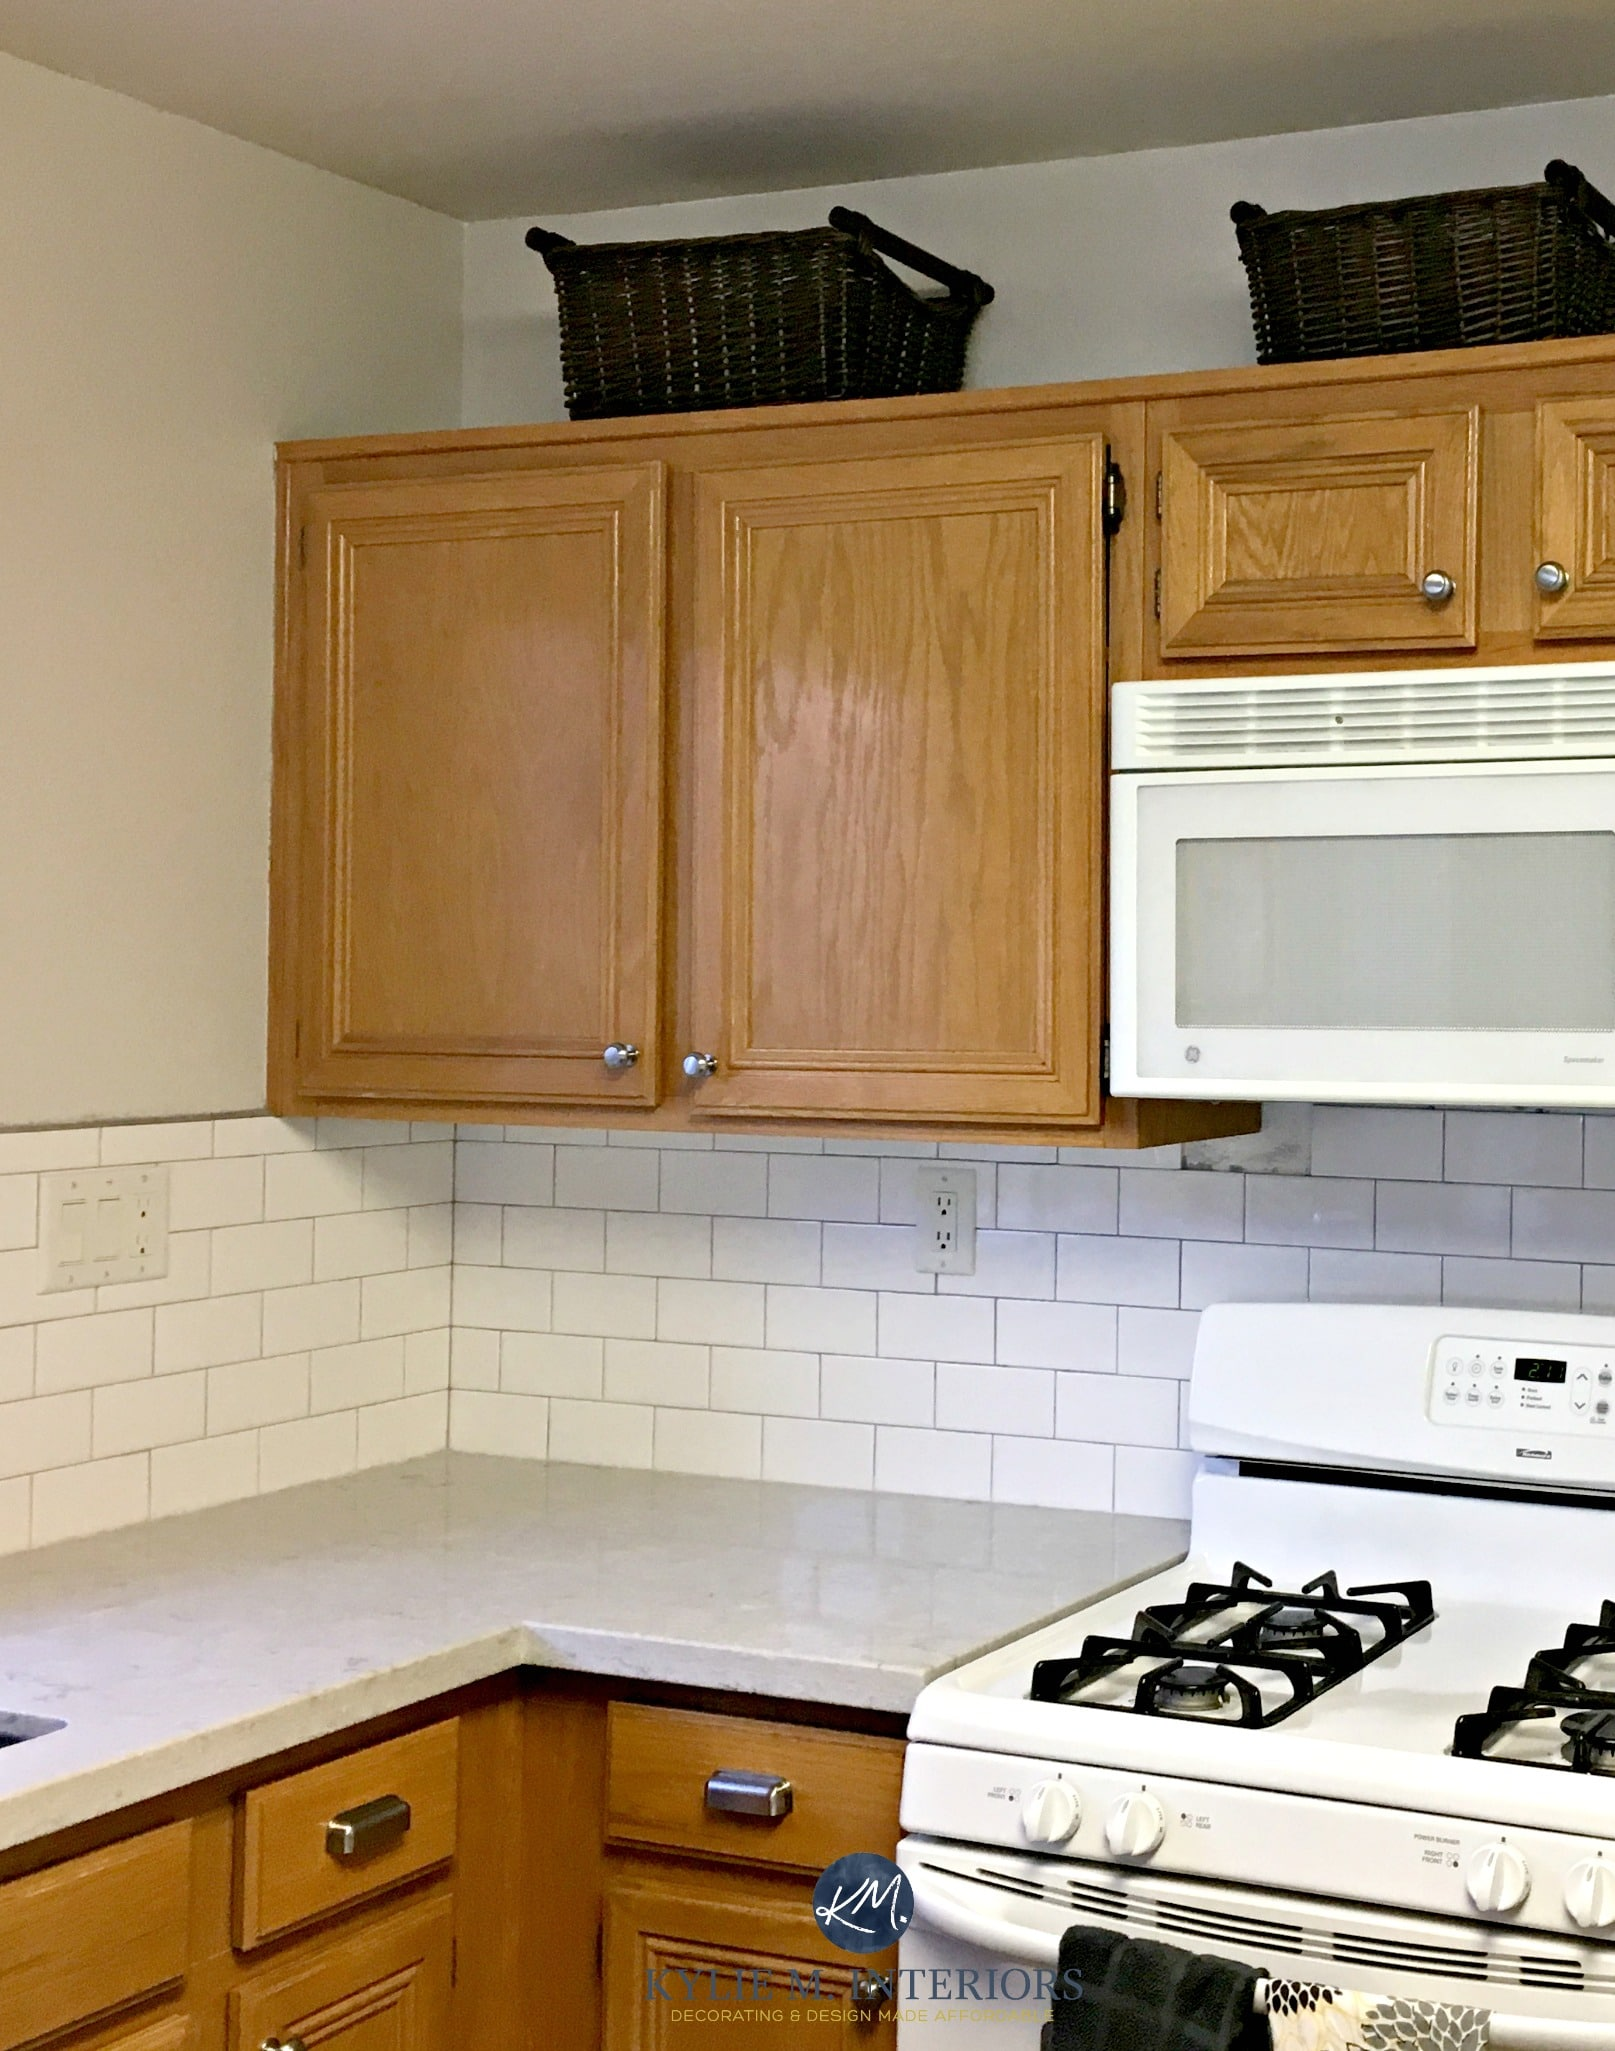 Benjamin Moore Classic Gray In A Kitchen With Oak Wood Cabinets White Subway Tile And Bianco